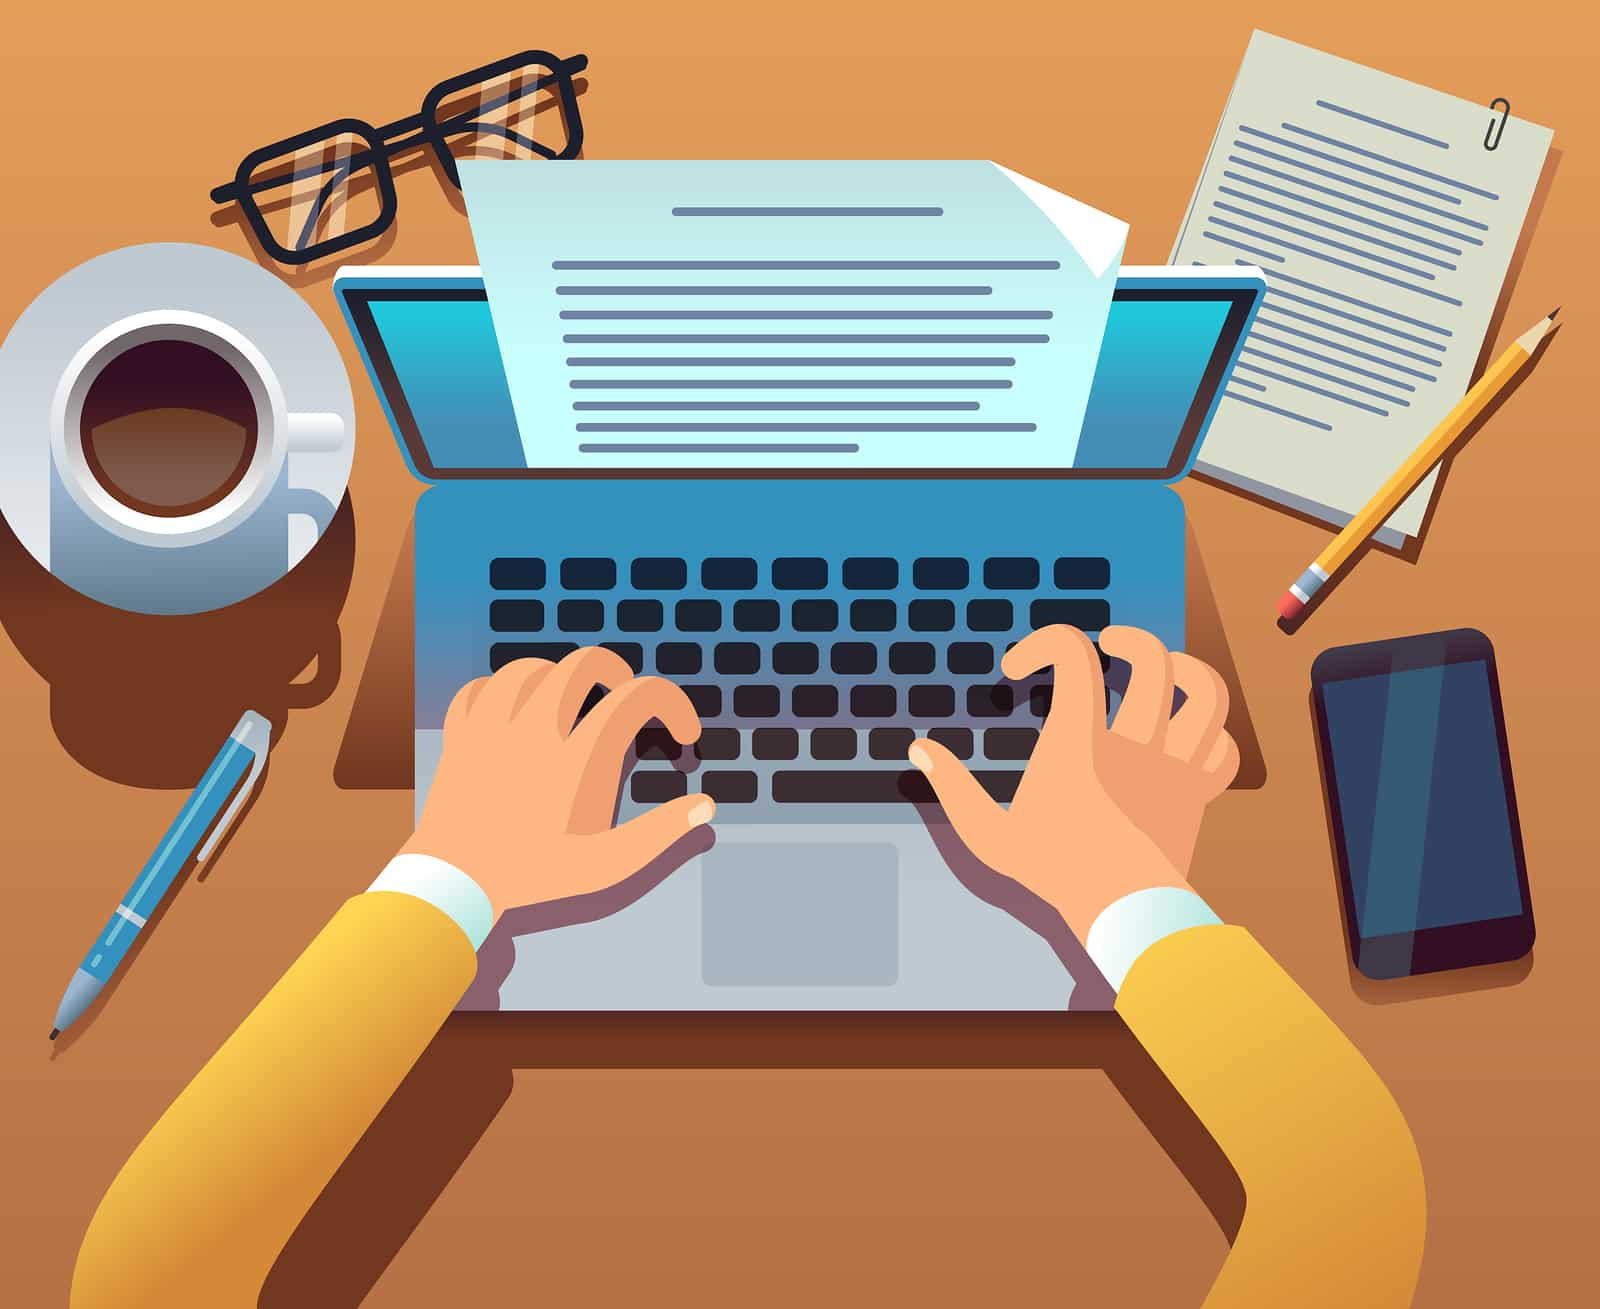 Illustration of someone typing on a computer with a coffee glasses and a smartphone on the table nearby